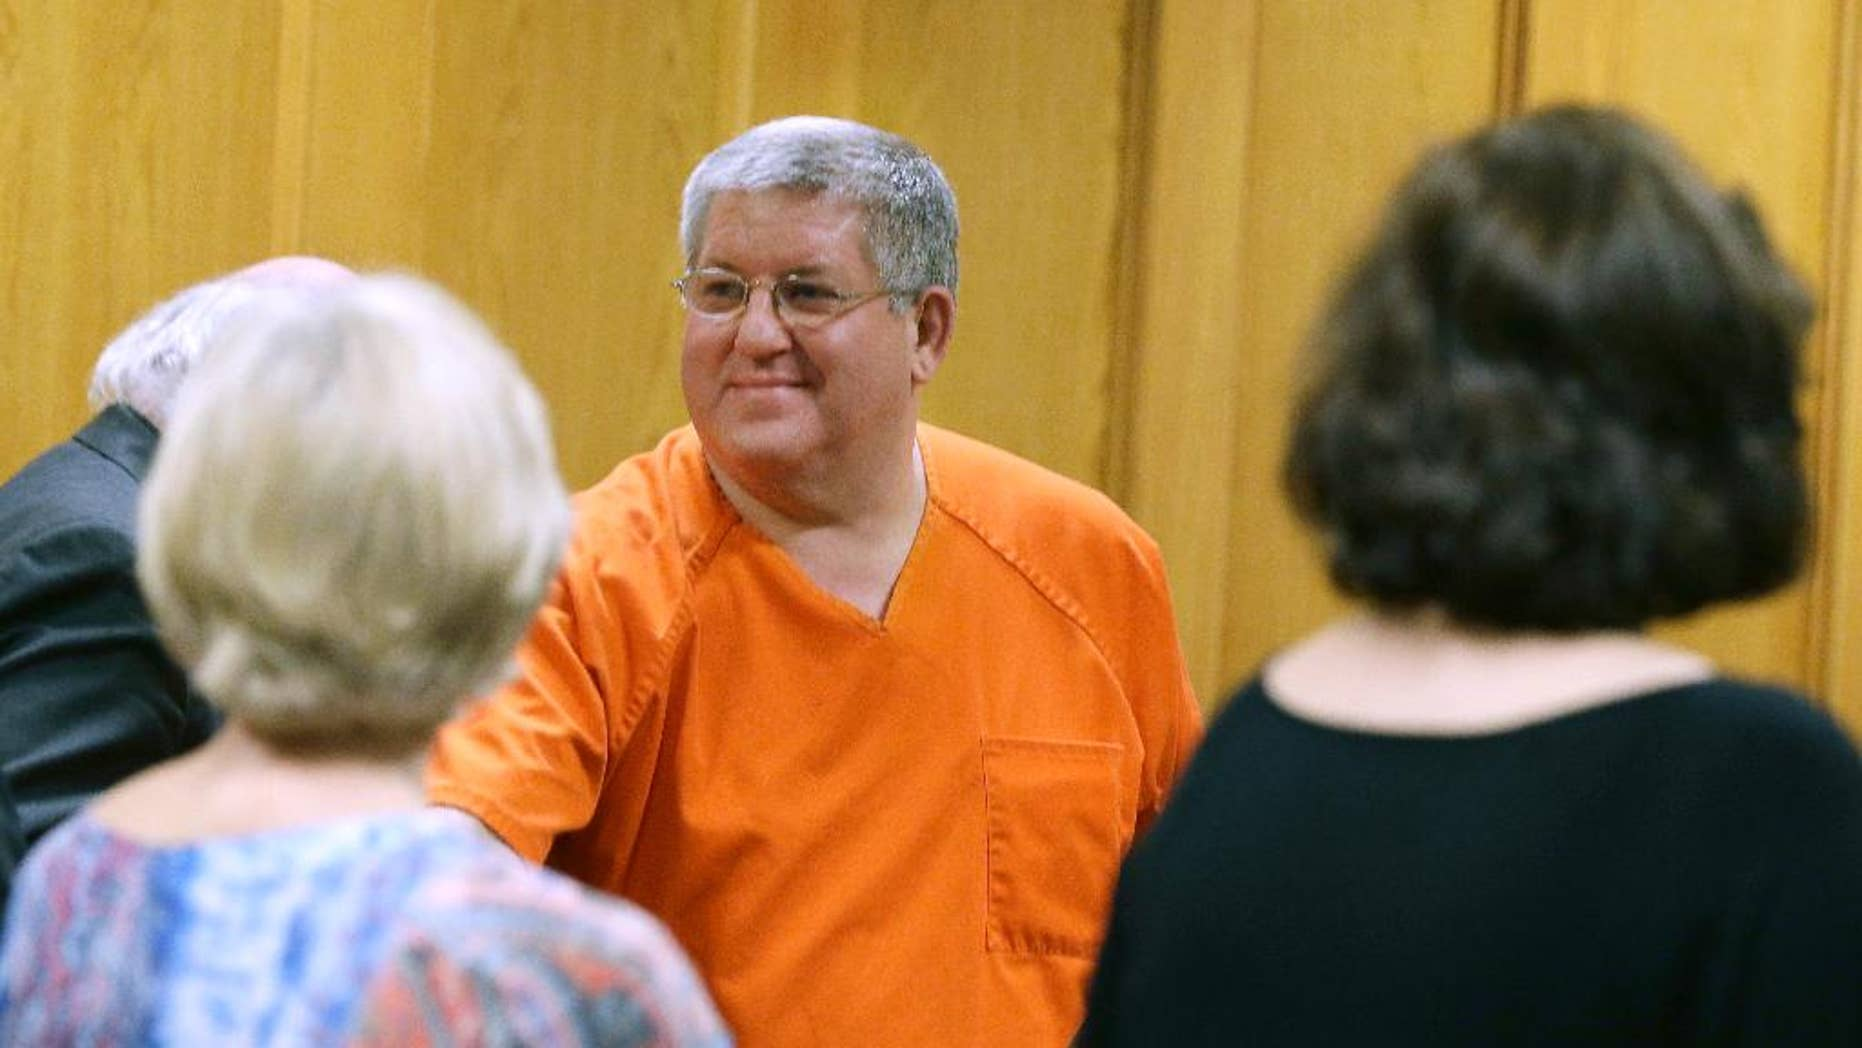 "File - In this May 6, 2014, file photo, Bernie Tiede smiles after a court hearing granting his release at the Panola County court house in Carthage, Texas.  Tiede had been sentenced to life for killing 81-year-old Marjorie Nugent. A state district judge is to hear pre-trial motions on Tuesday, March 31,2015, including one for the prosecutor's recusal, in the case that inspired the dark comedy ""Bernie."" (AP Photo/LM Otero, File)"